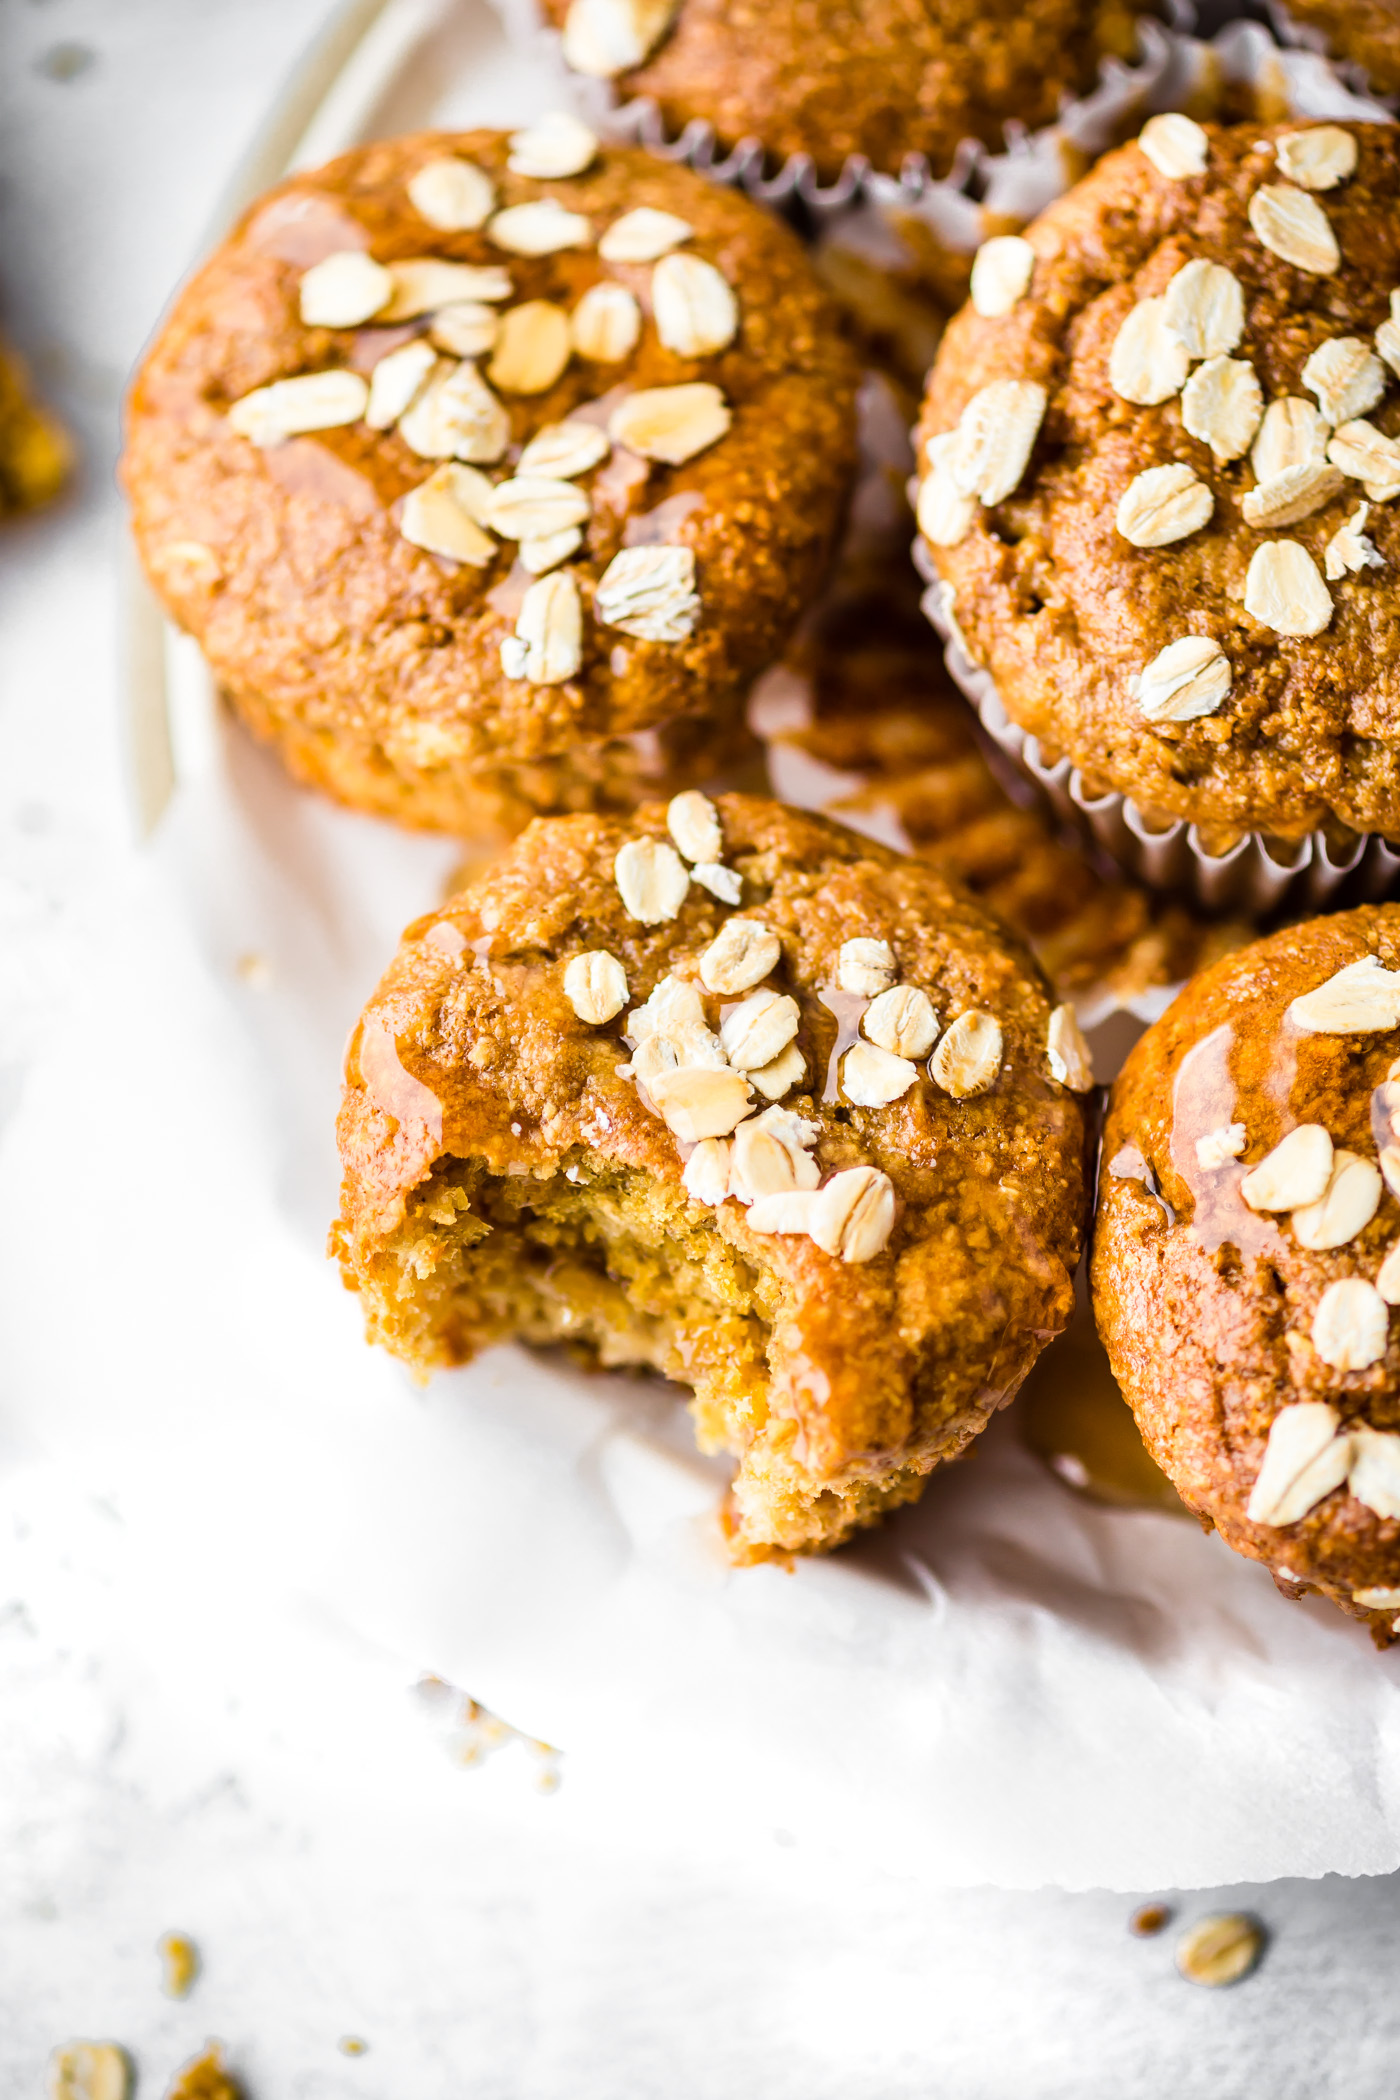 These Flourless Honey Oat Ricotta Muffins are easy to make for a healthy breakfast or snack! A Gluten-free Ricotta Muffins recipe that's honey sweetened and rich in protein, fiber, and calcium. Flourless baking made quick and simple